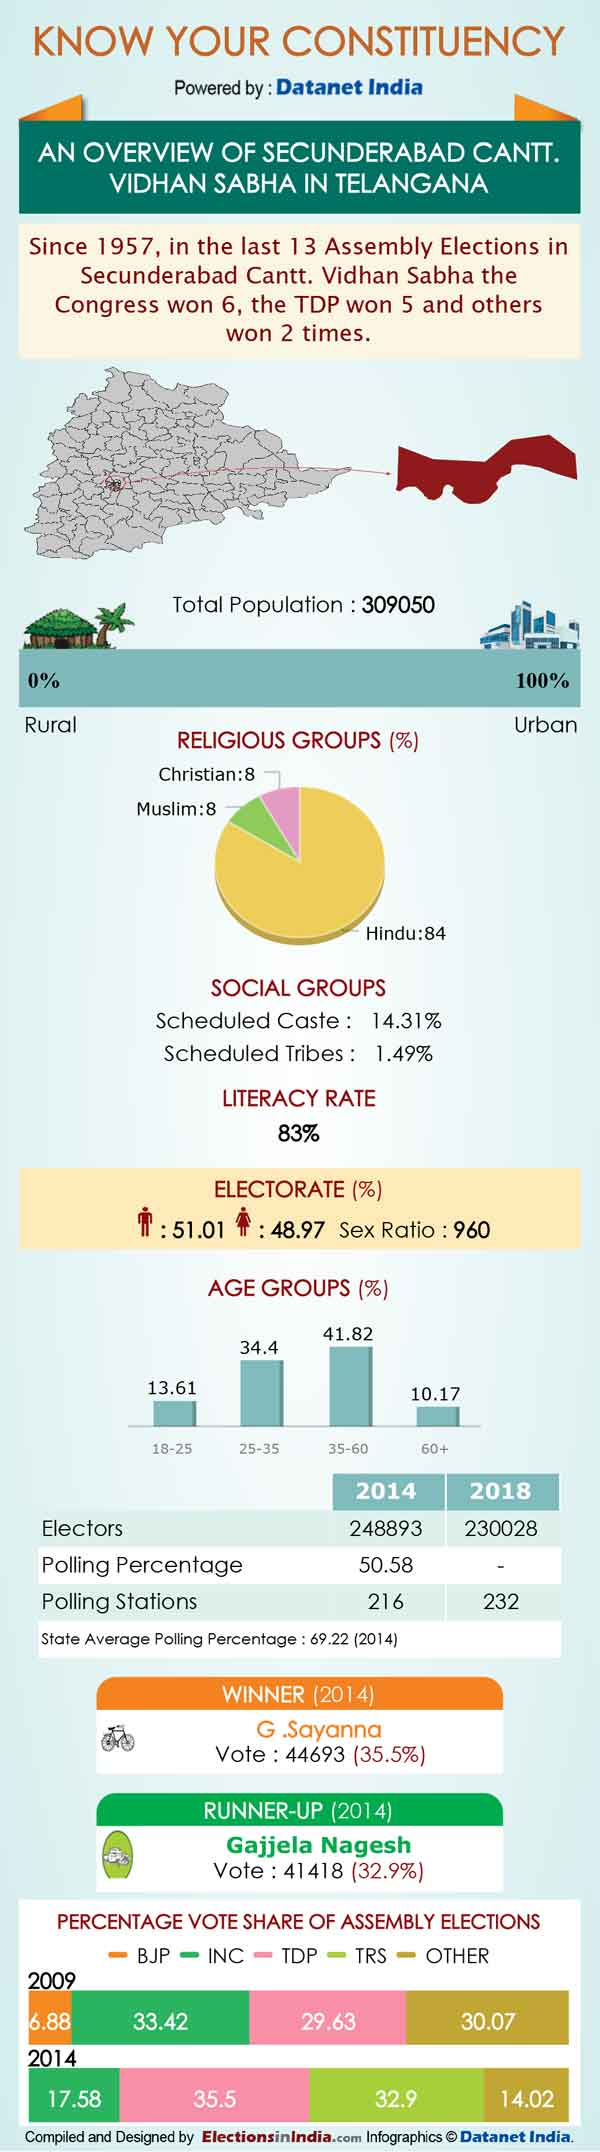 Telangana Elections: Important Facts about Secunderabad Cantonment